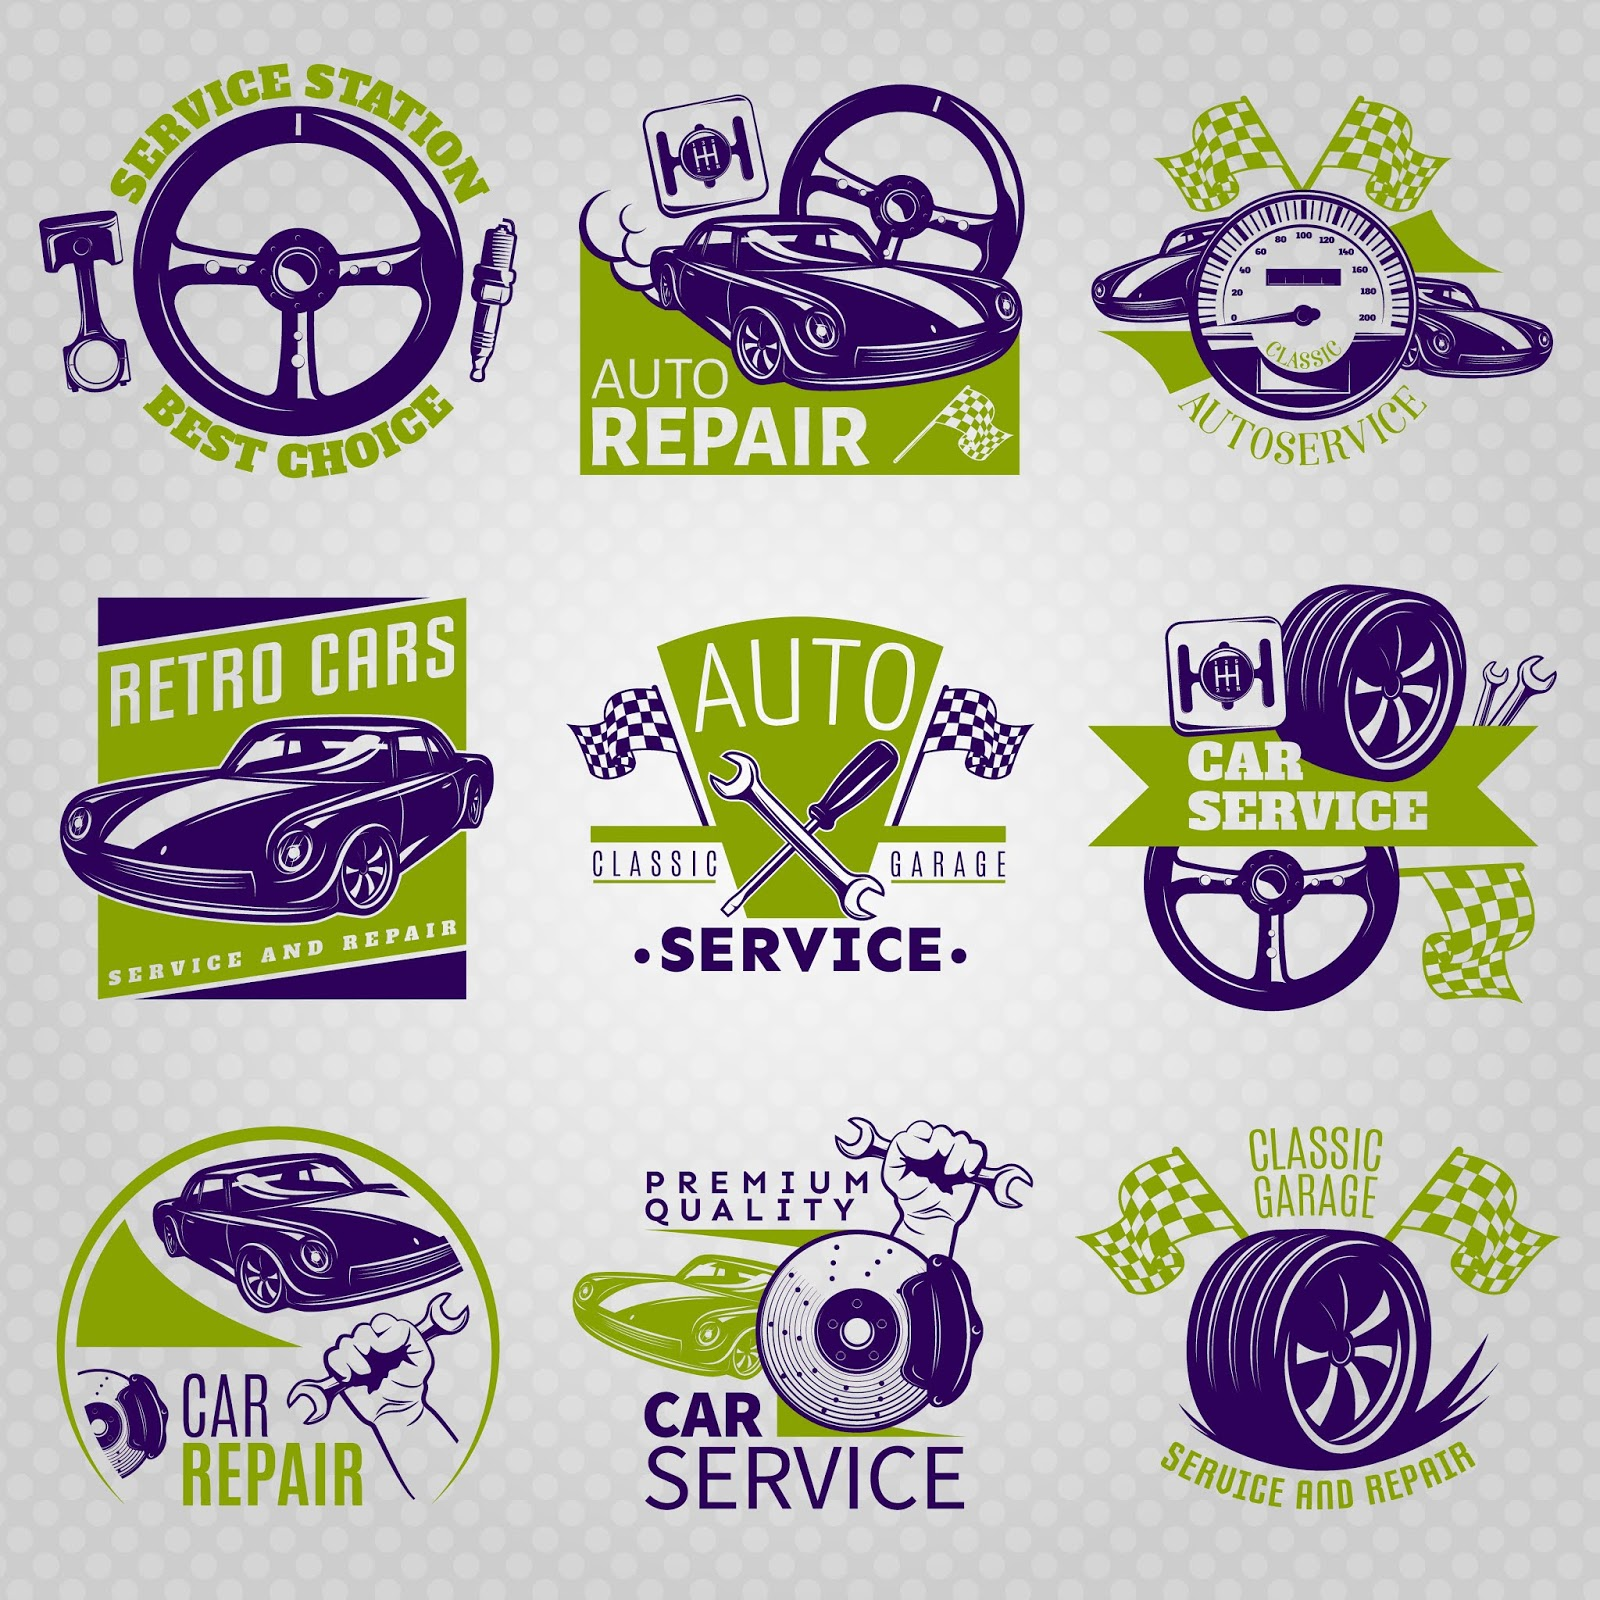 Car Repair Color Emblem Set Service Station Best Choice Different Slogans Vector Illustration Free Download Vector CDR, AI, EPS and PNG Formats